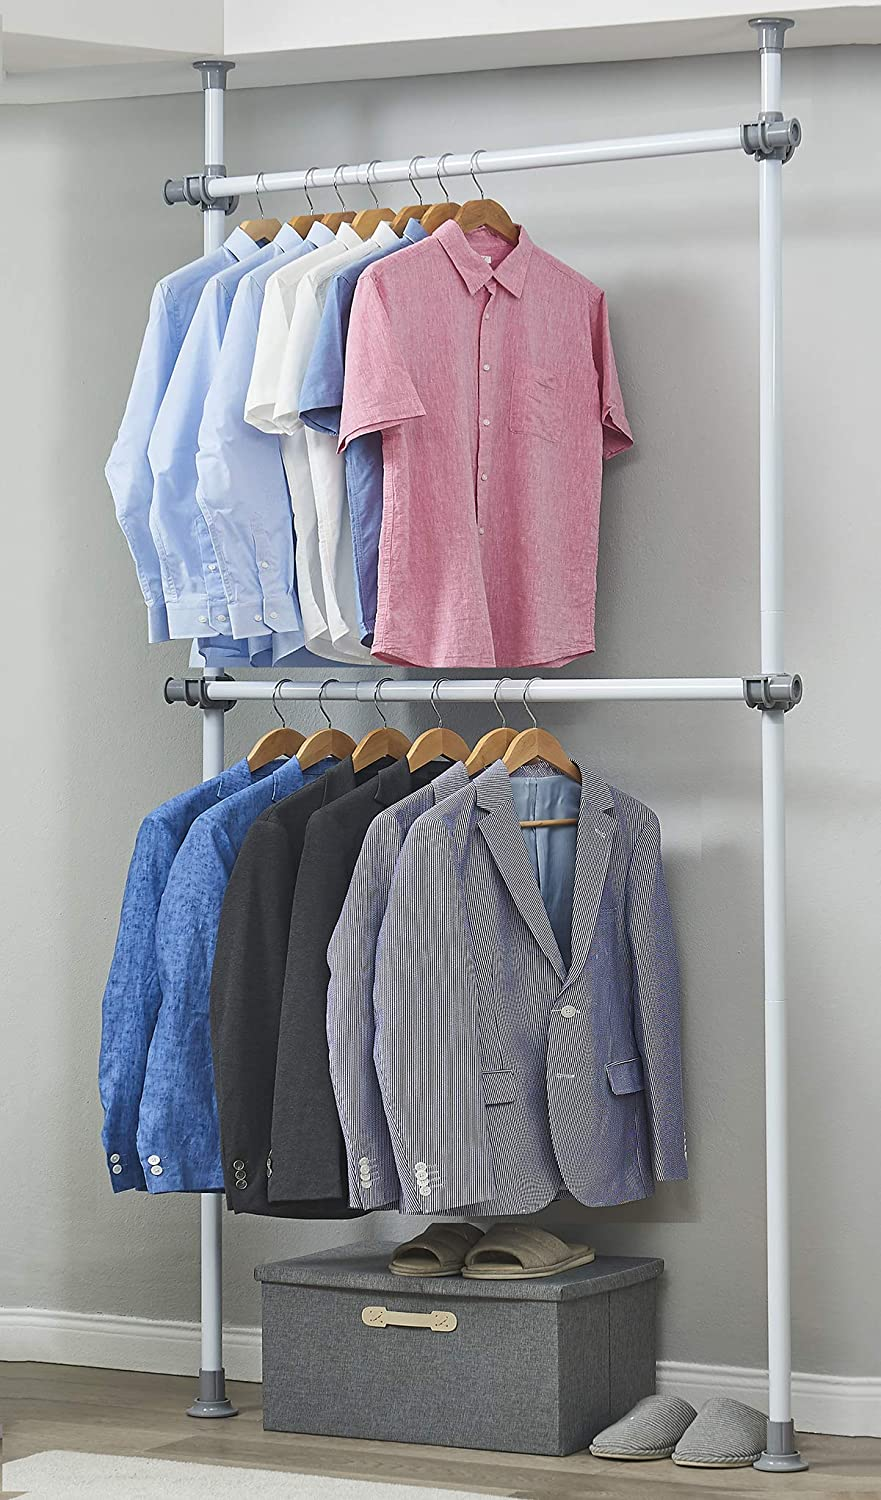 ALLZONE Adjustable Closet Rod Double Rail,Freestanding Clothing Garment Rack Organizer System